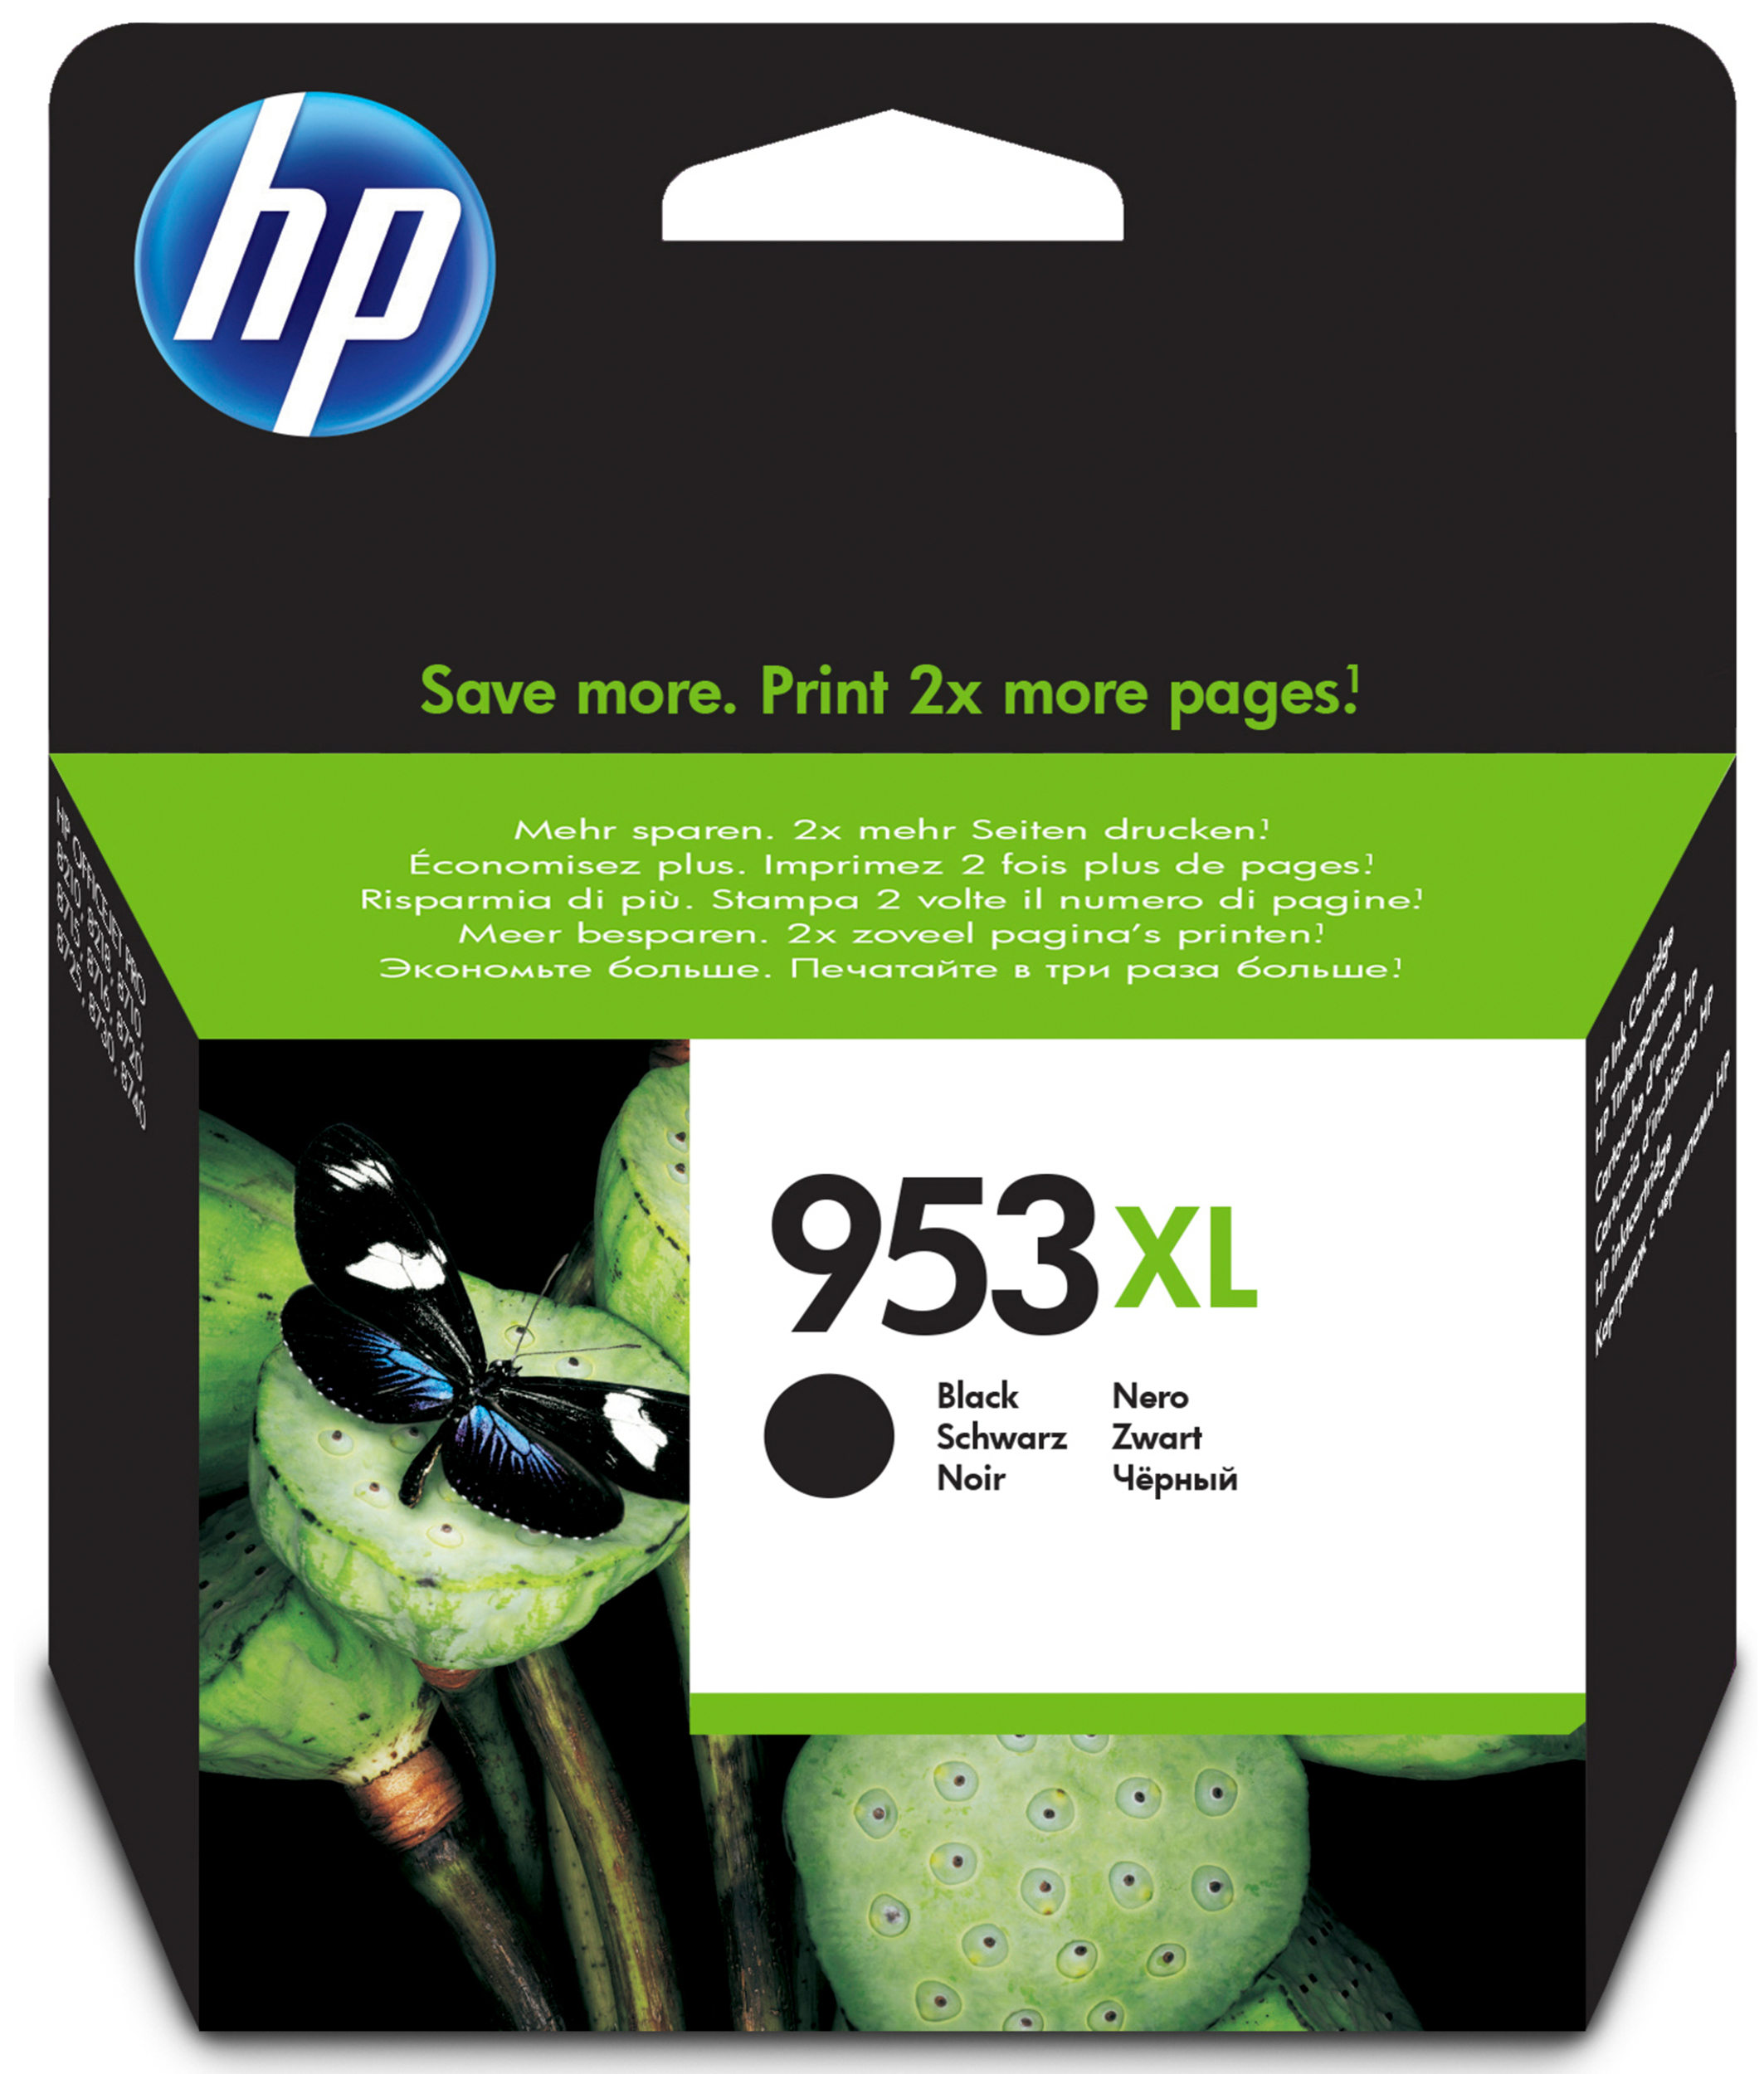 HP 953XL - 42.5 Ml - High Yield - Black - Original - Ink Cartridge - For Officejet Pro 8218, 8710, 8715, 8720, 8725, 8730, 8740, 8745 L0S70AE#BGX - C2000